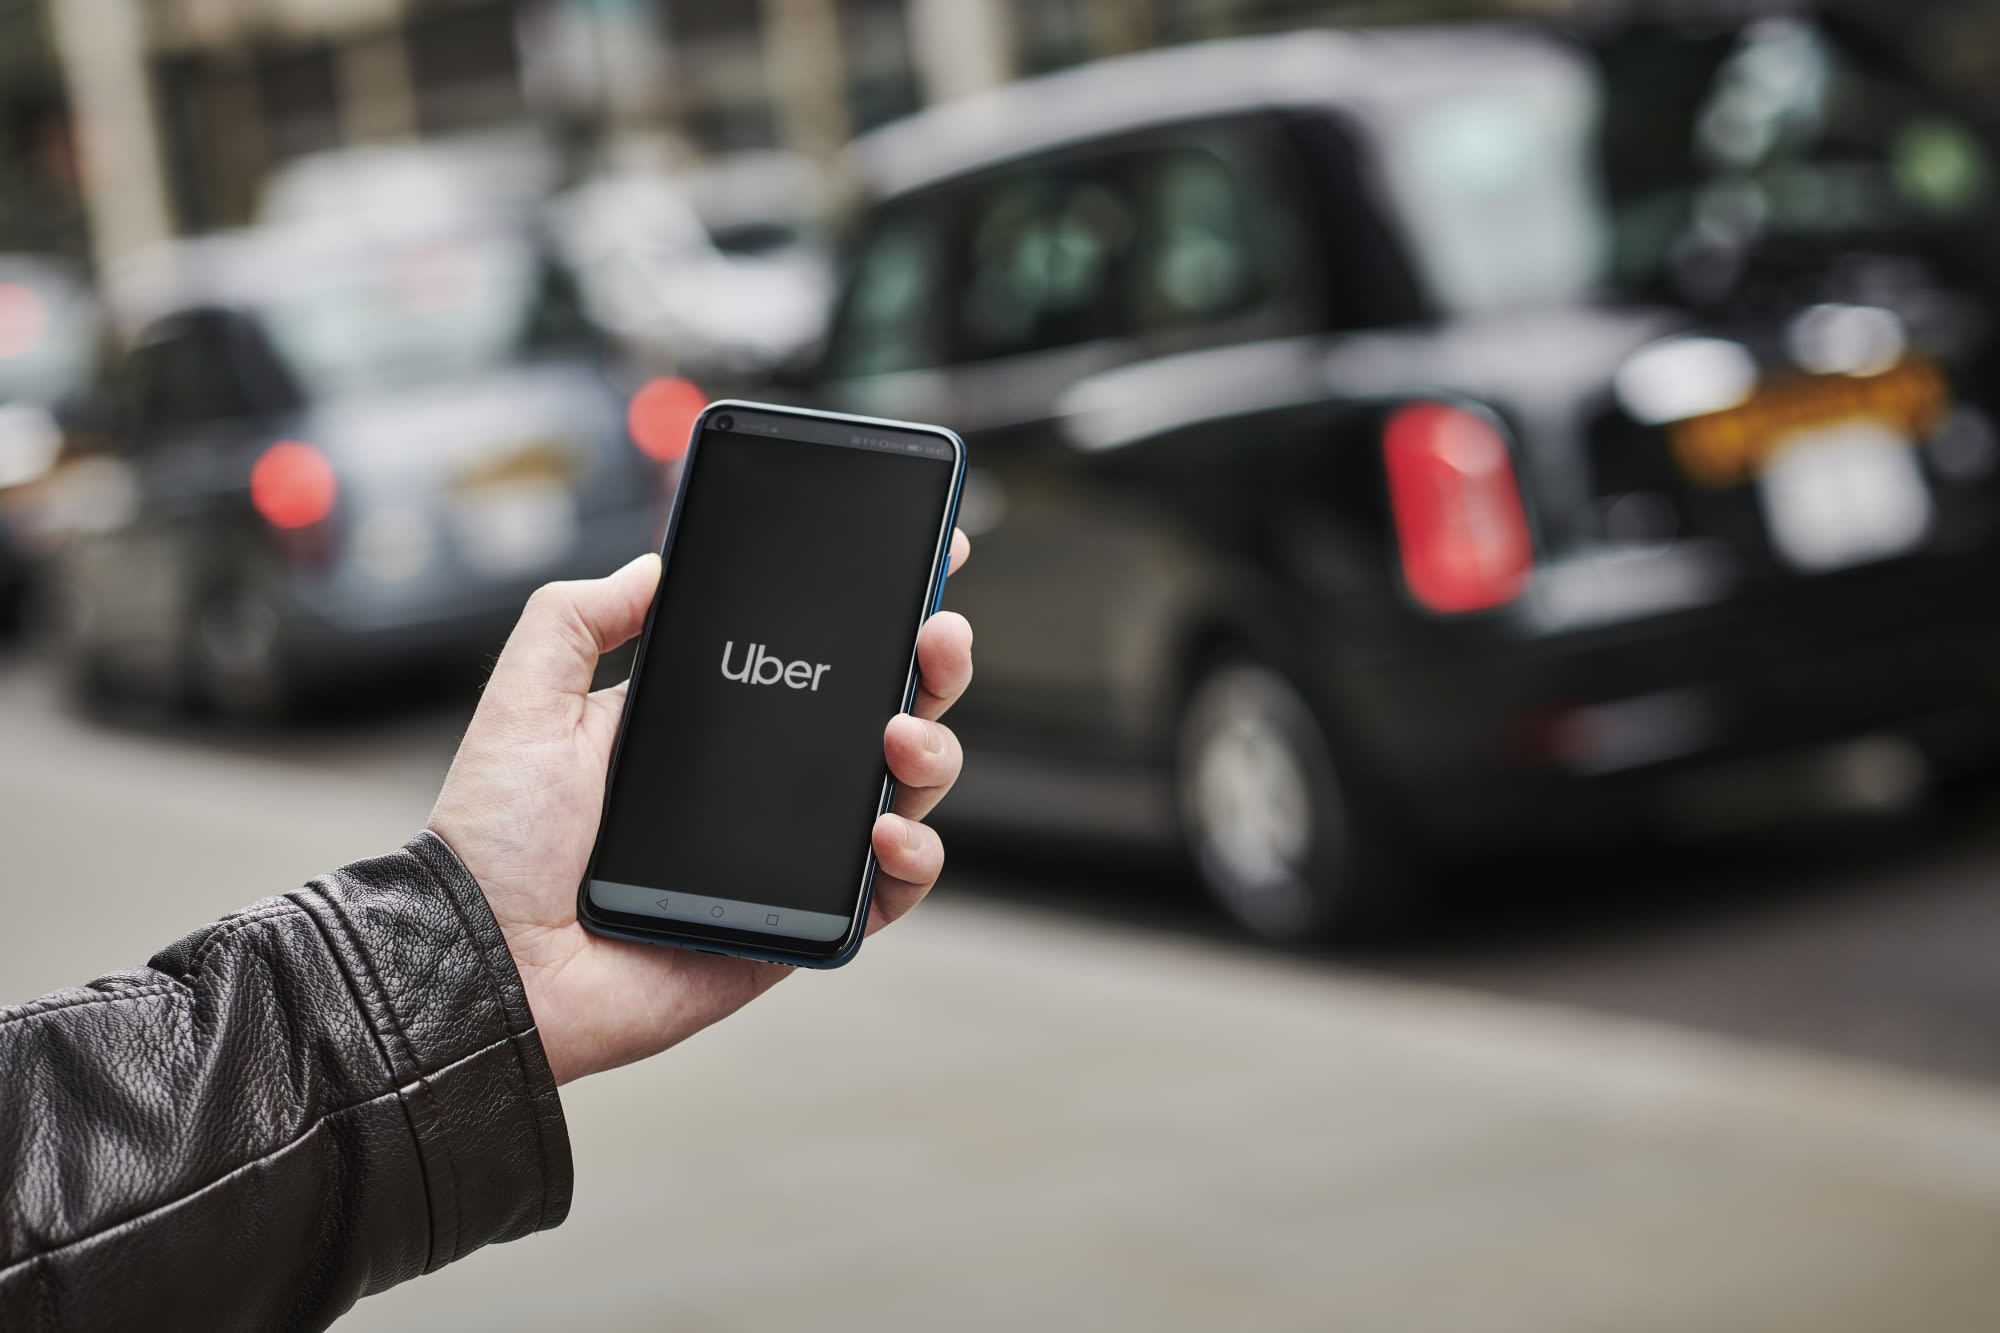 Uber error charges riders 100 times more than the original price